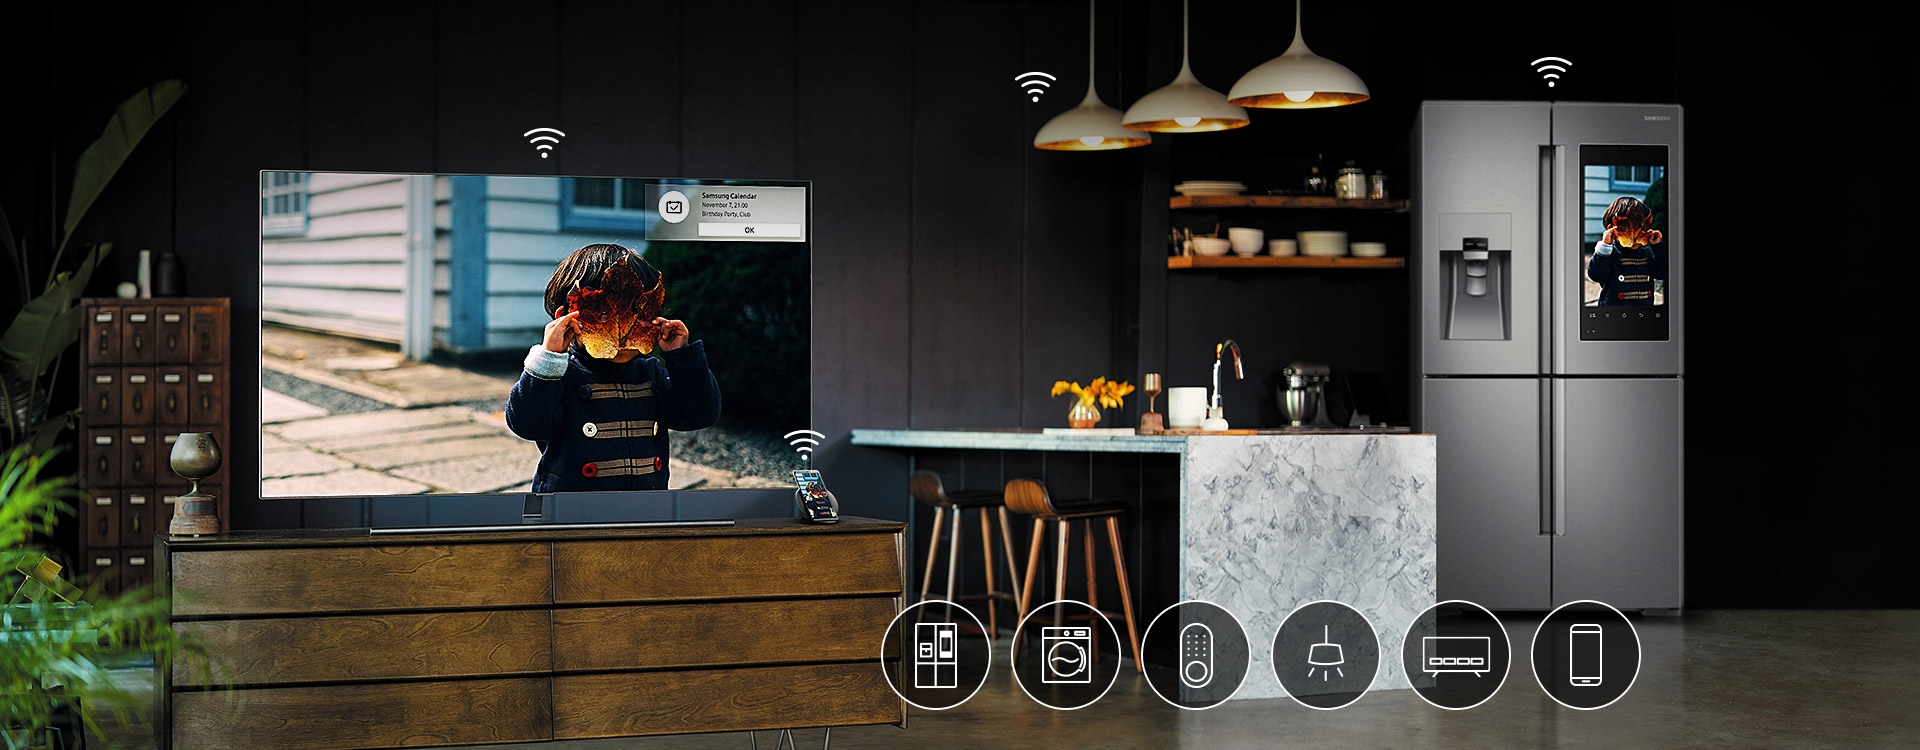 The Samsung QLED TV in the living room, mobile phone, and the refrigerator standing next to the kitchen table are connected with wi-fi to function together harmoniously. 6 icons are overlaid on image, representing possible connecting devices such as TV, door lock, refrigerator, washing machine, lightings and mobile phone.